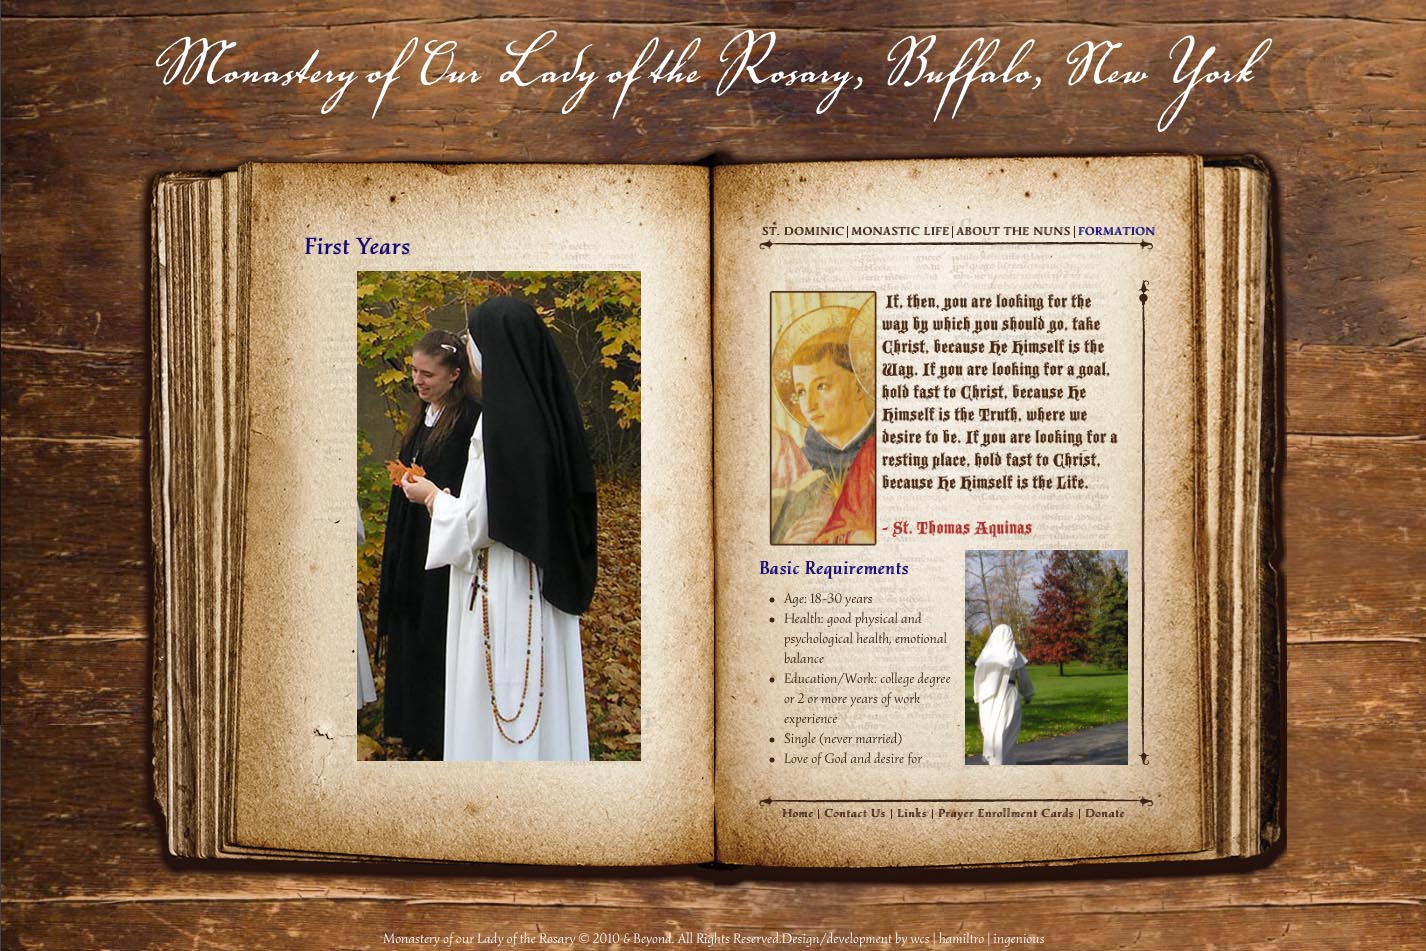 web design for a monastery - first years